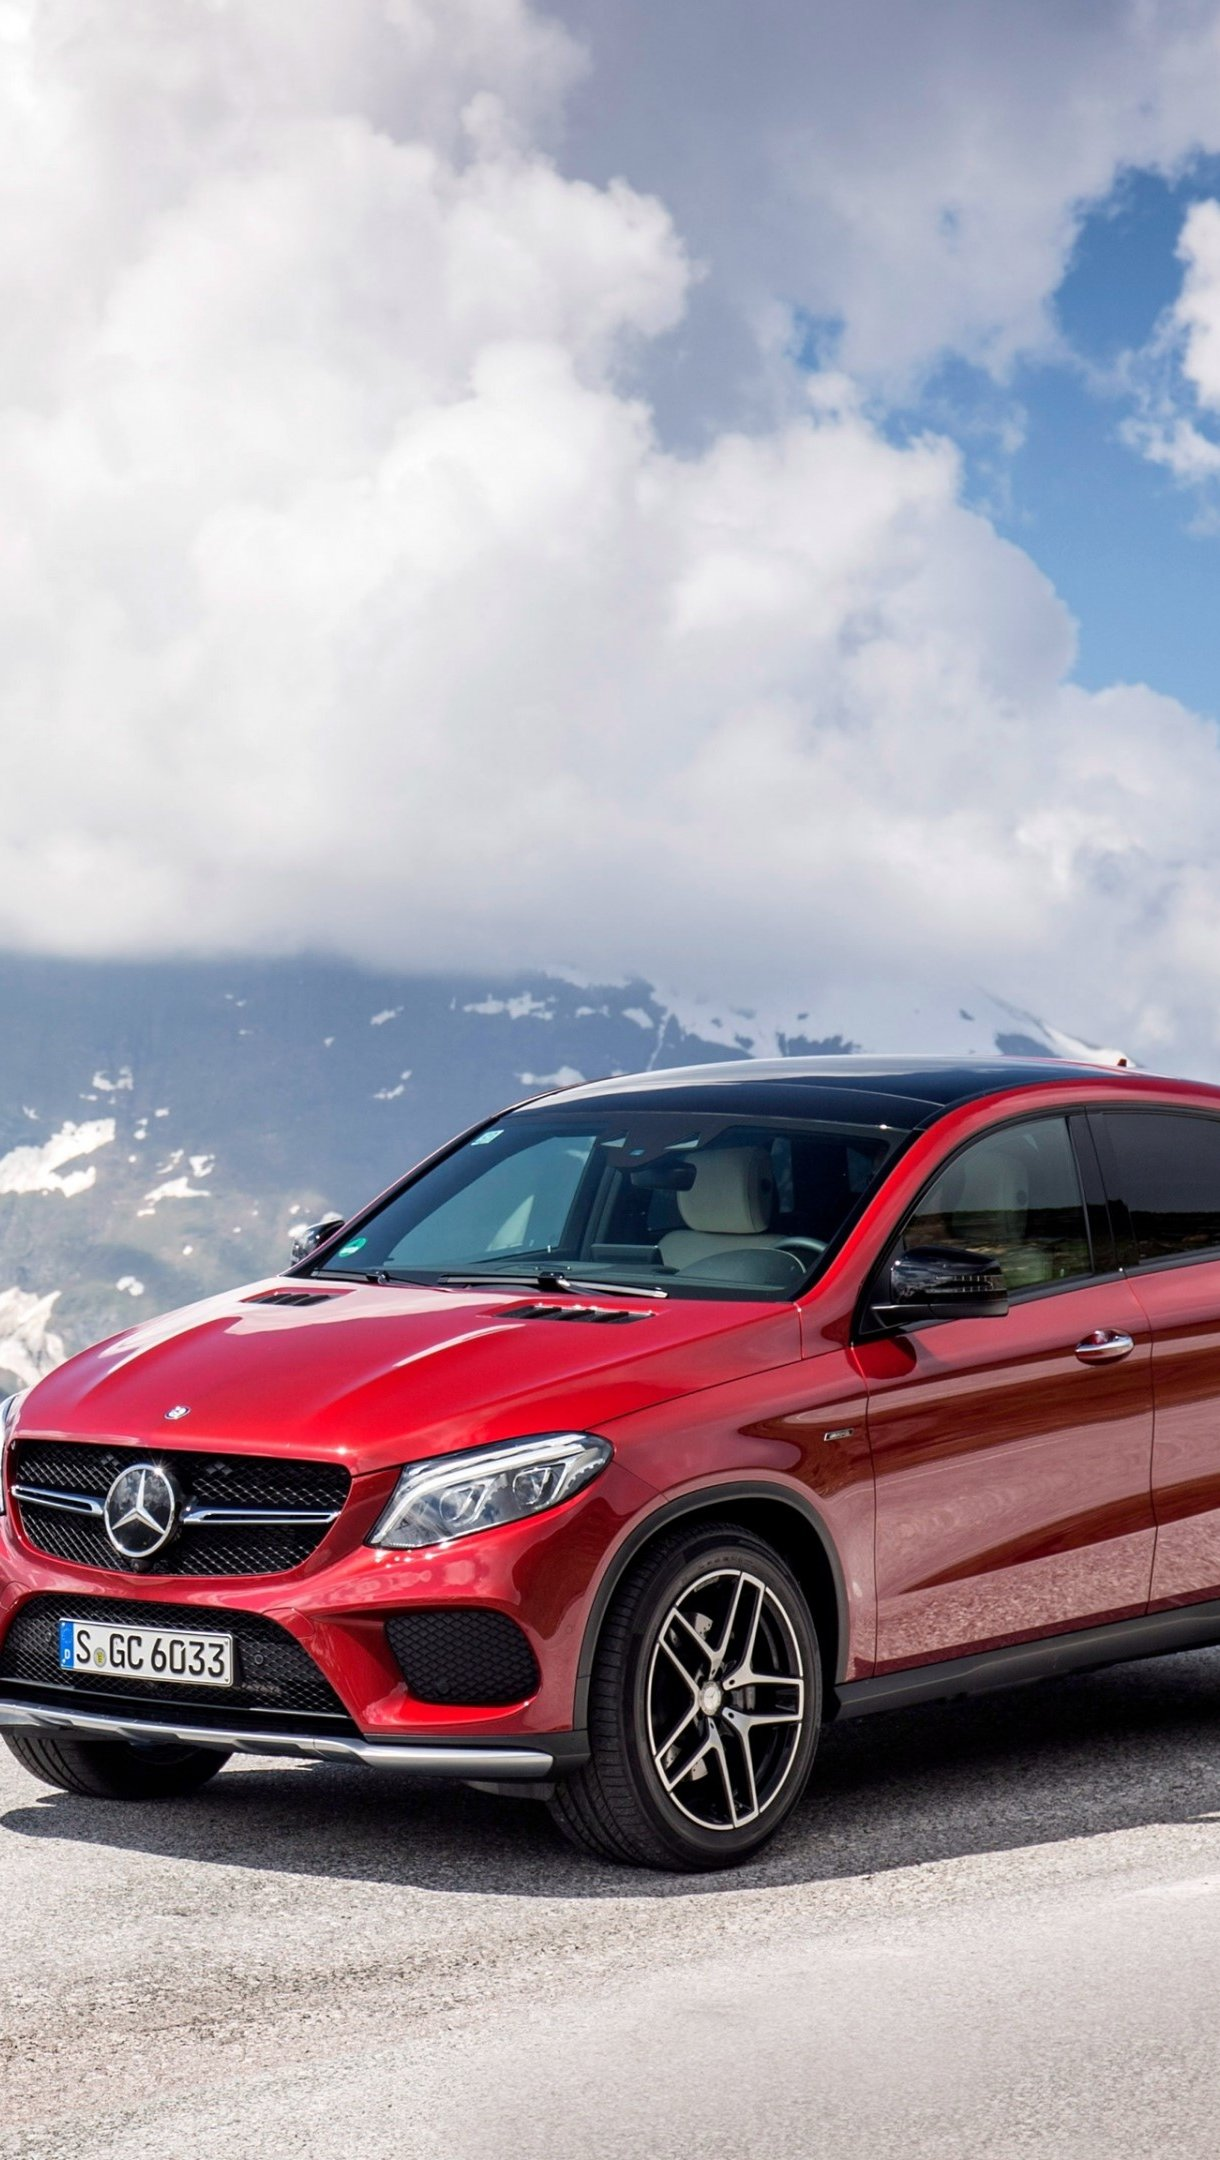 Wallpaper Mercedes Benz GLE 450 AMG Red in mountains Vertical